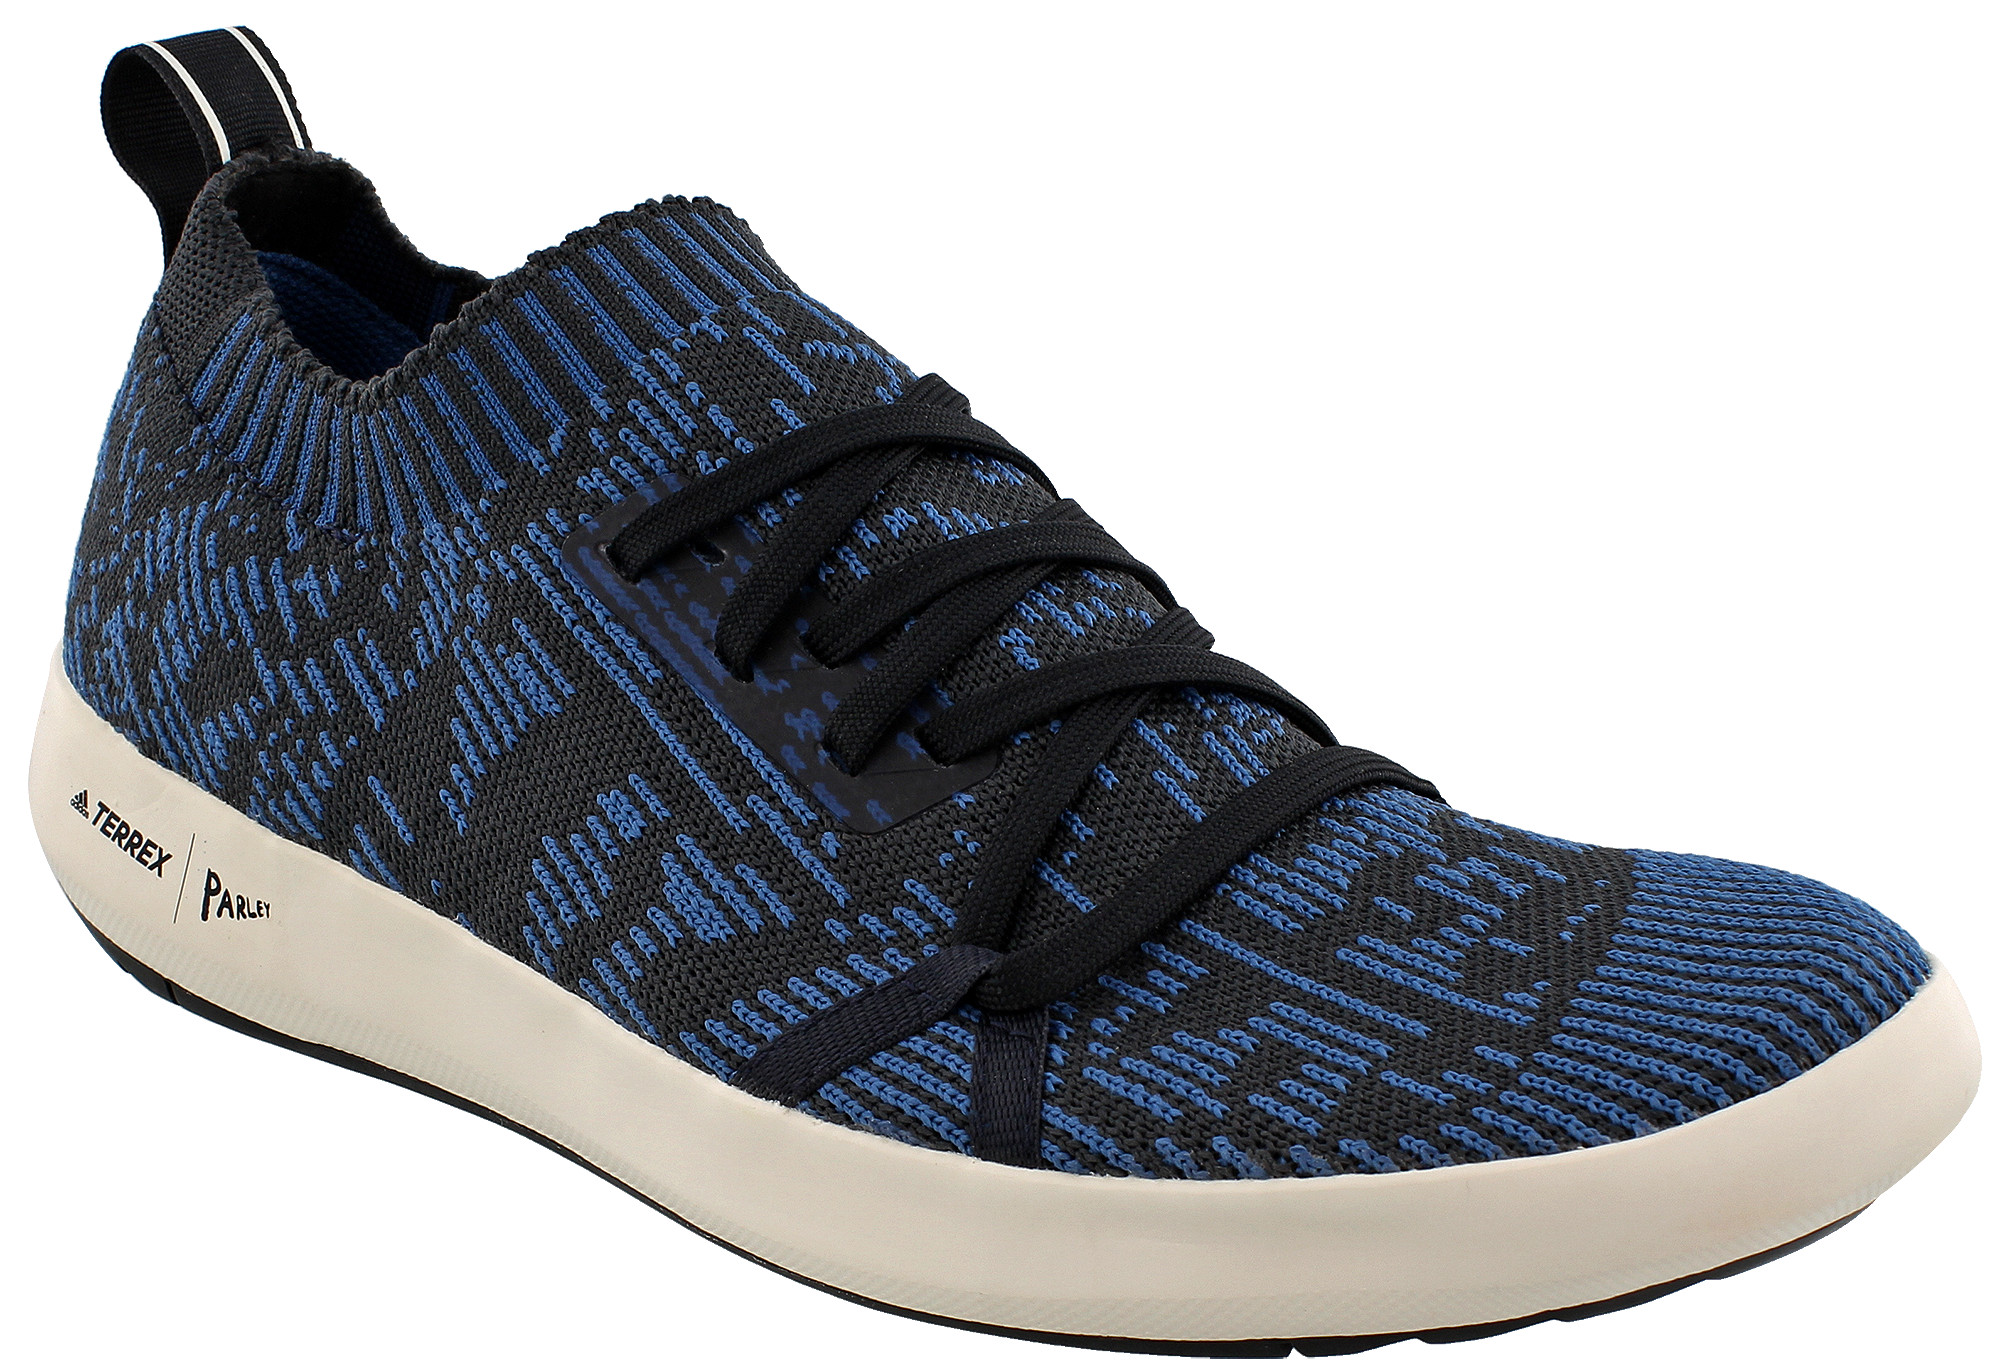 Adidas Outdoor Terrex Parley Climacool Boat Watersport Shoe Men's